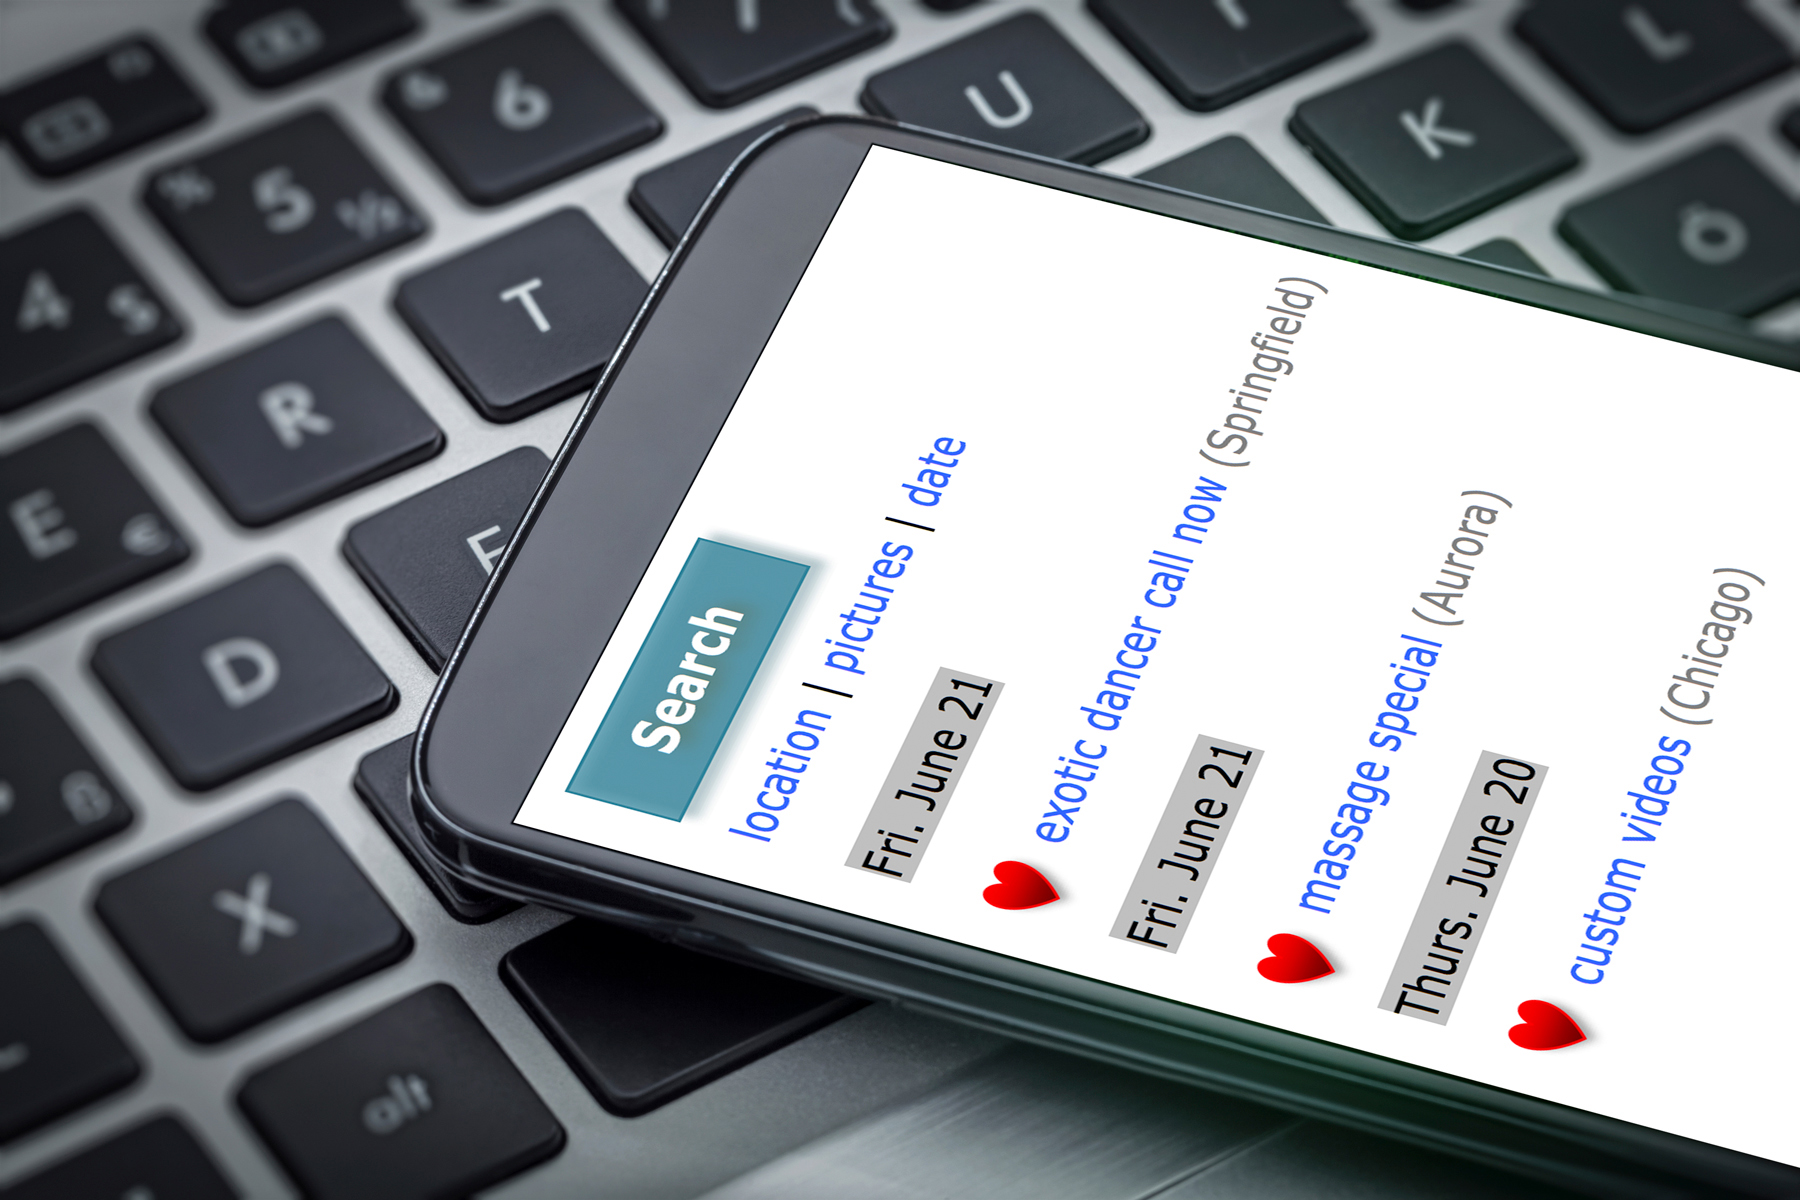 Stock image depicting a smartphone displaying a listing of online ads; the phone is laying atop a laptop keyboard.